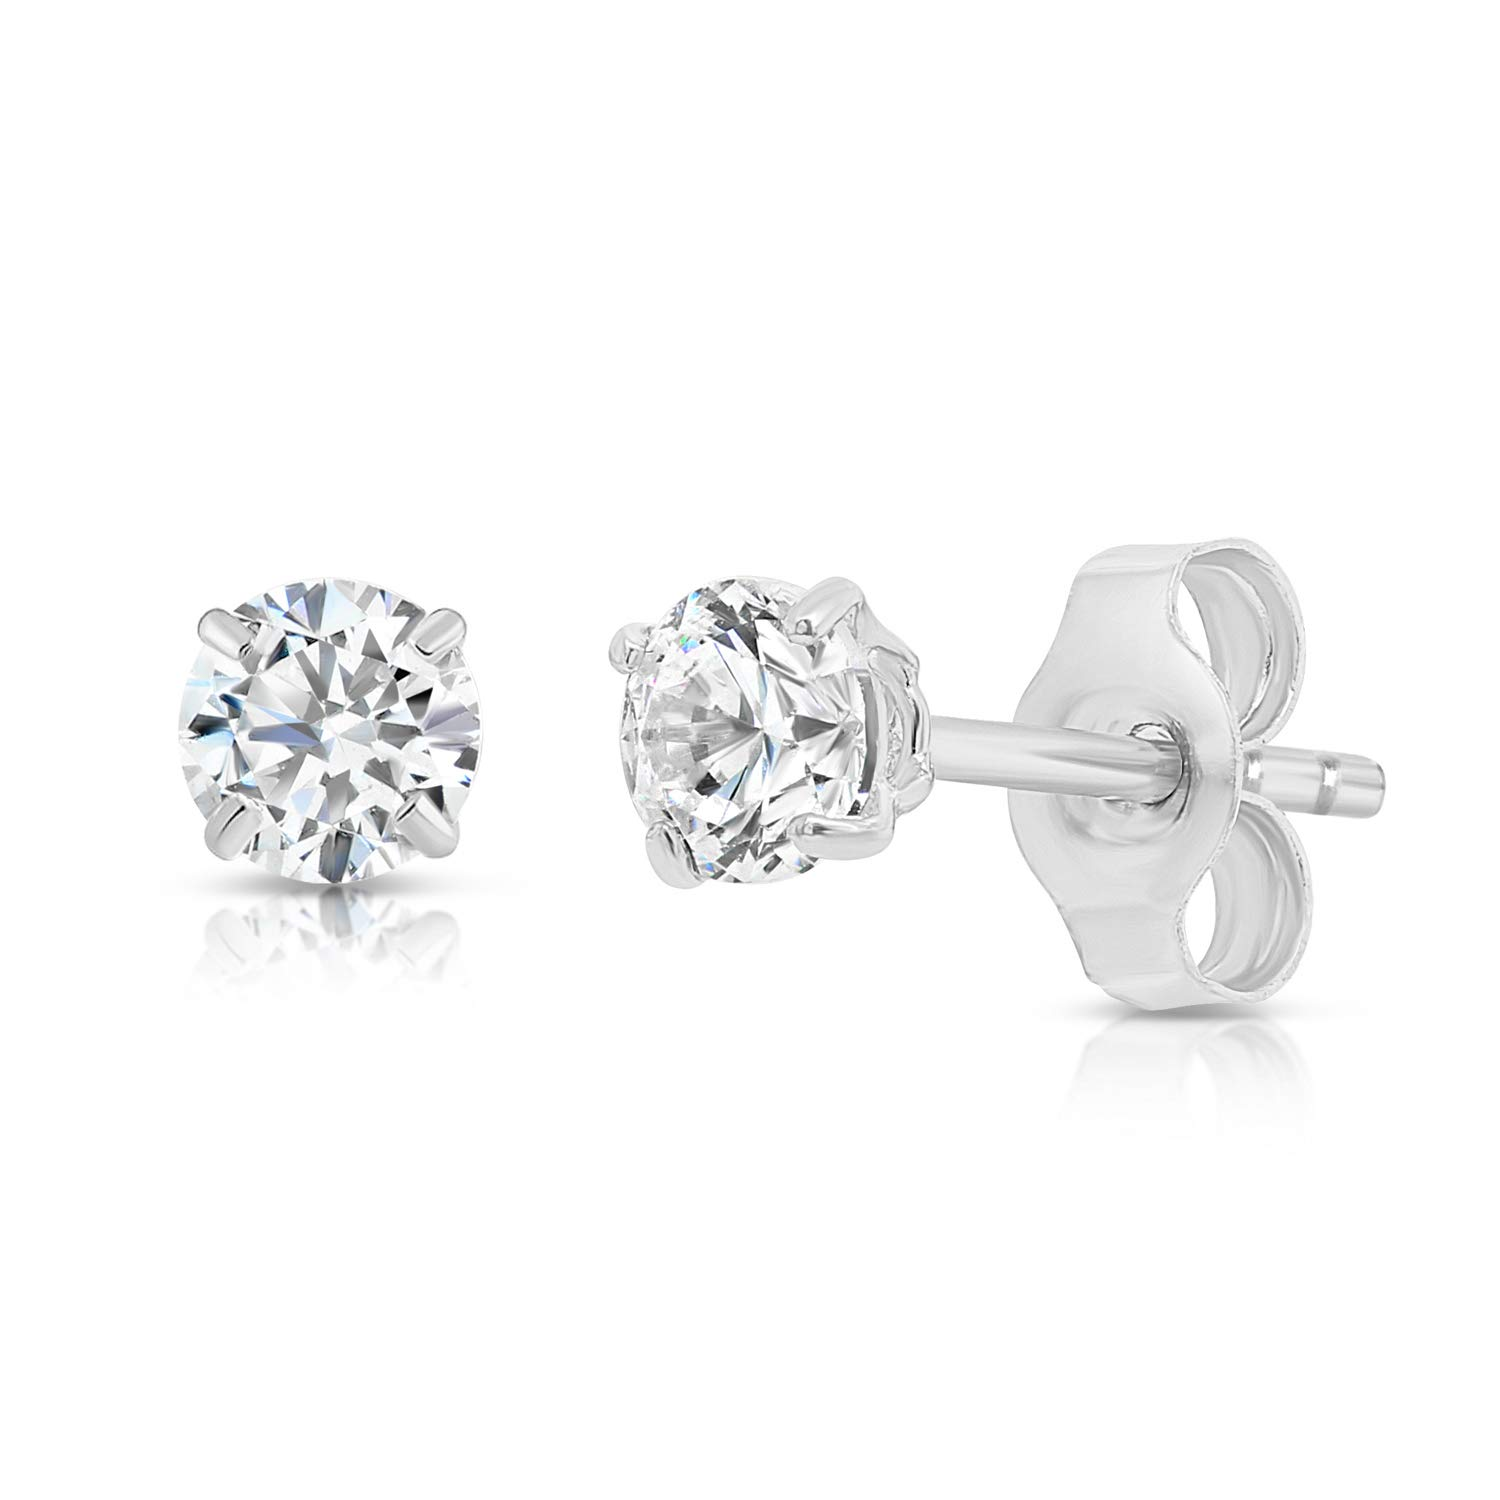 14k White Gold Solitaire Round Cubic Zirconia Stud Earrings with Gold butterfly Pushbacks (4mm) by Tilo Jewelry